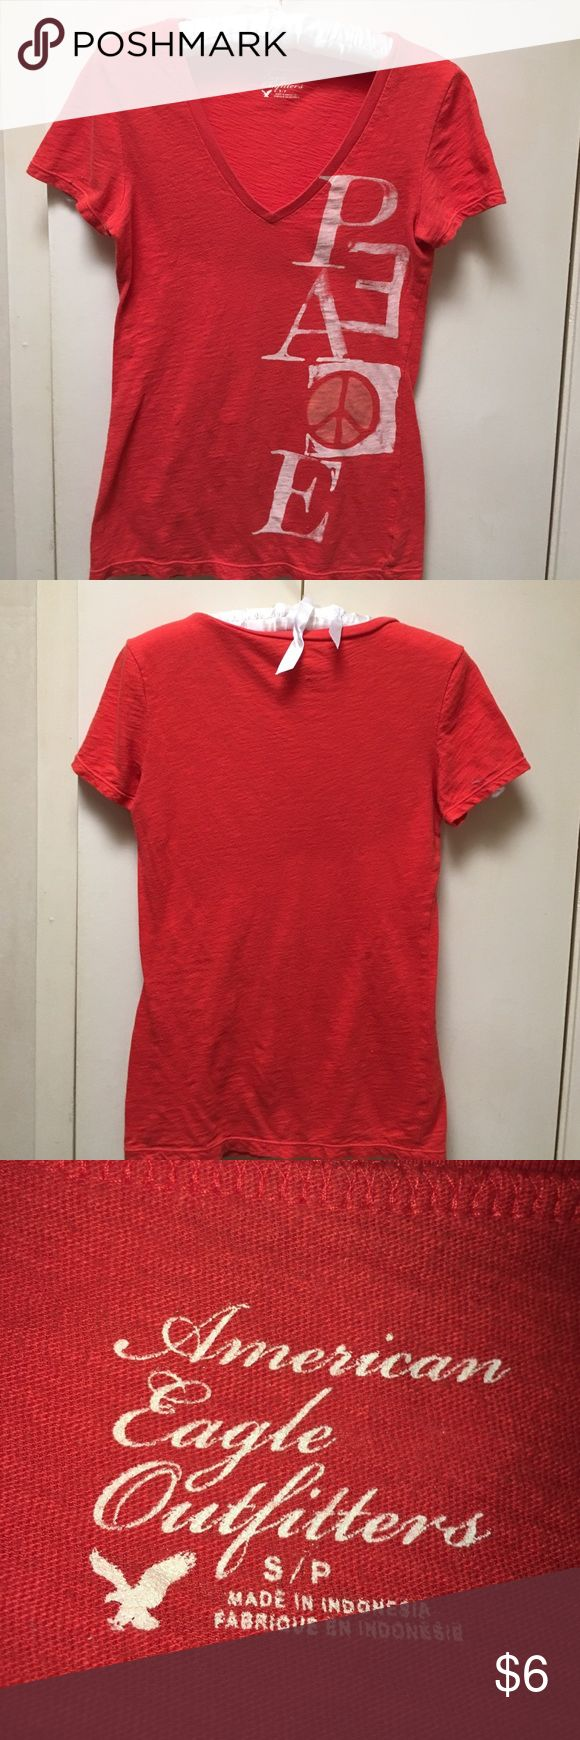 American Eagle Outfitters, Peace and Love tshirt. V neck shirt sleeve and great color. We all need a little more Peace/Love! American Eagle Outfitters Tops Tees - Short Sleeve